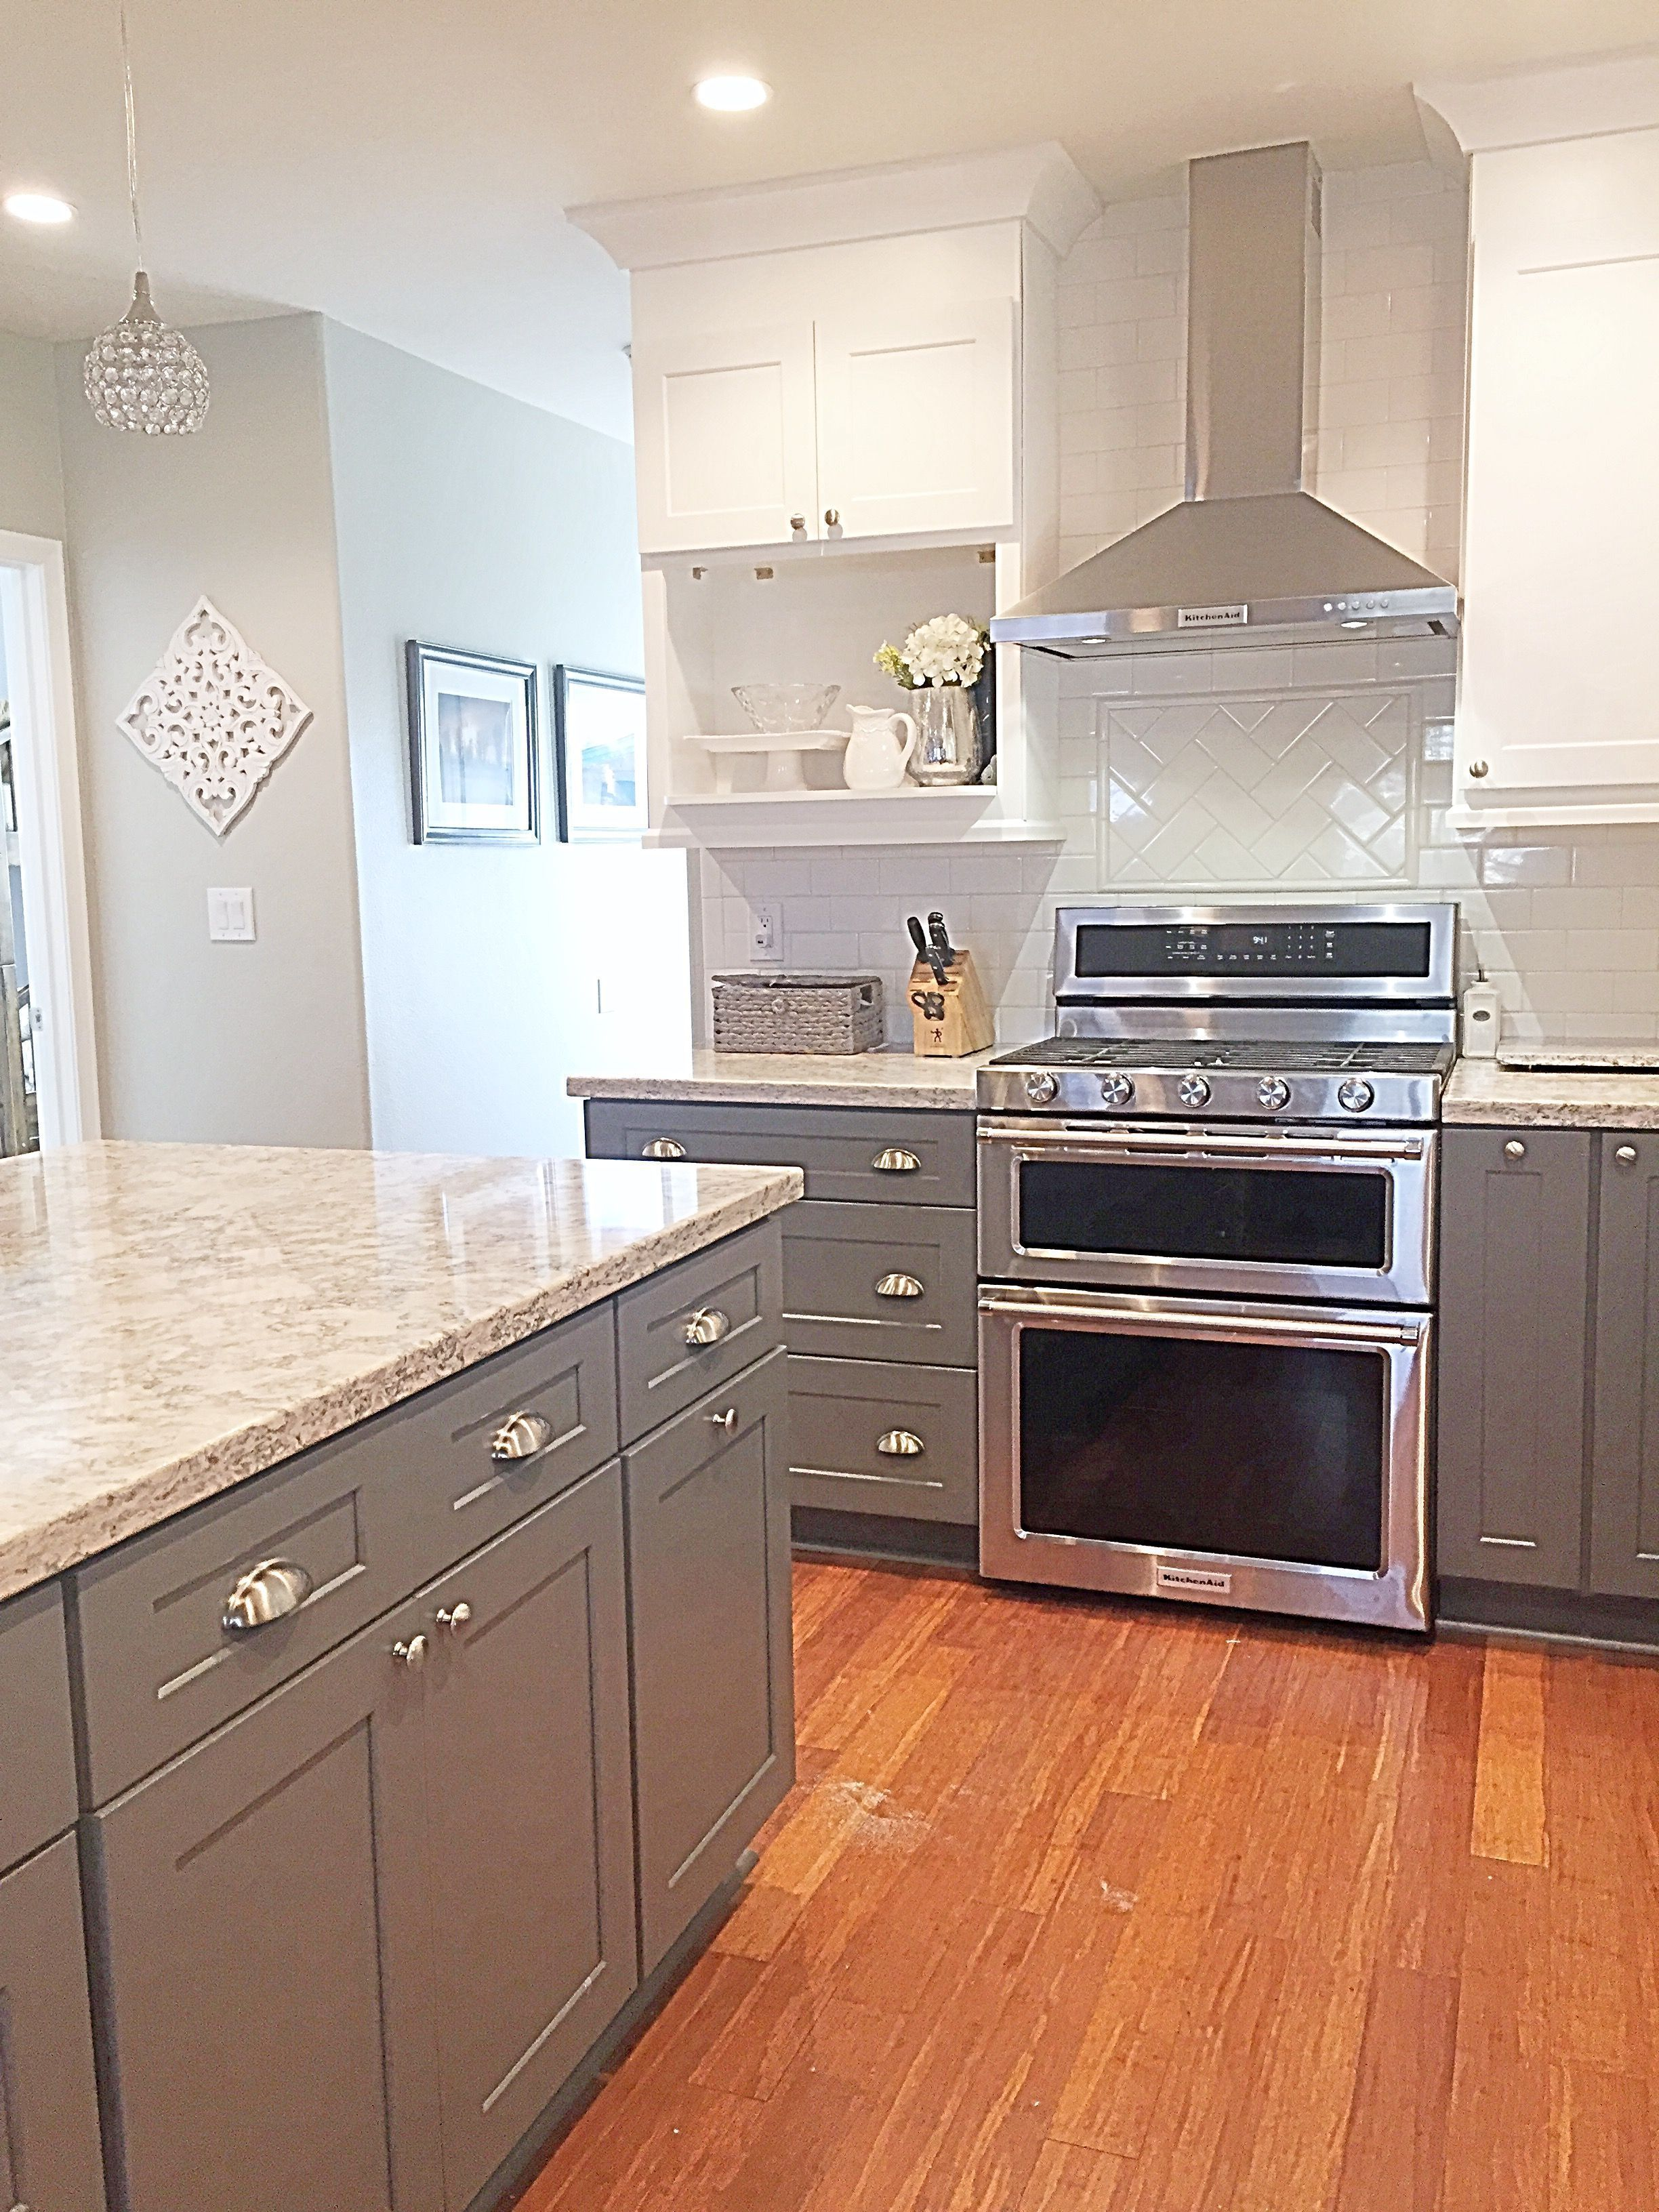 51 Unique Kitchen Cabinet Ideas To Get You Started Kitchen Cabinets Decor Kitchen Cabinet Trends New Kitchen Cabinets